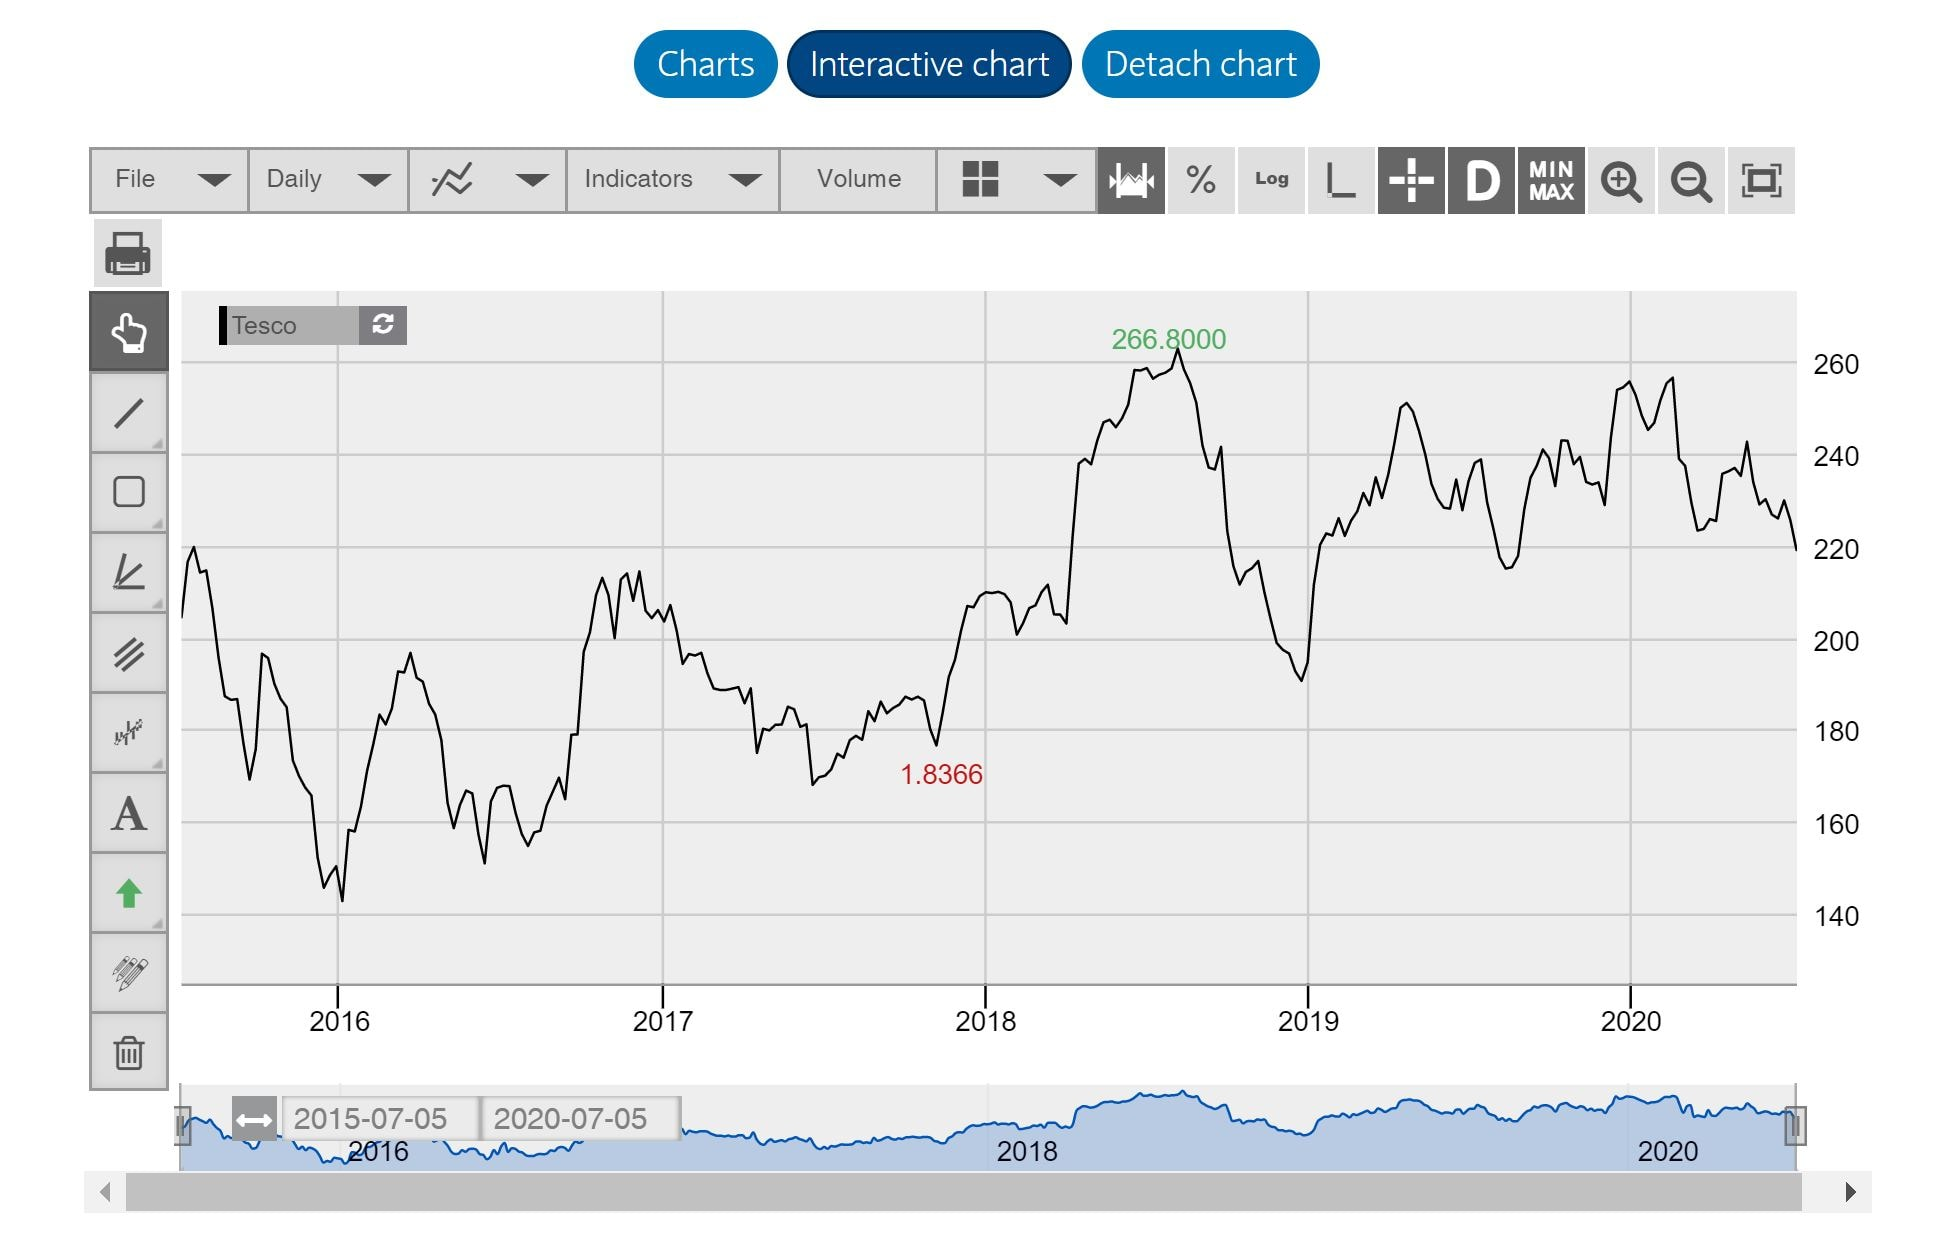 Interactive Tesco price chart from Barclays